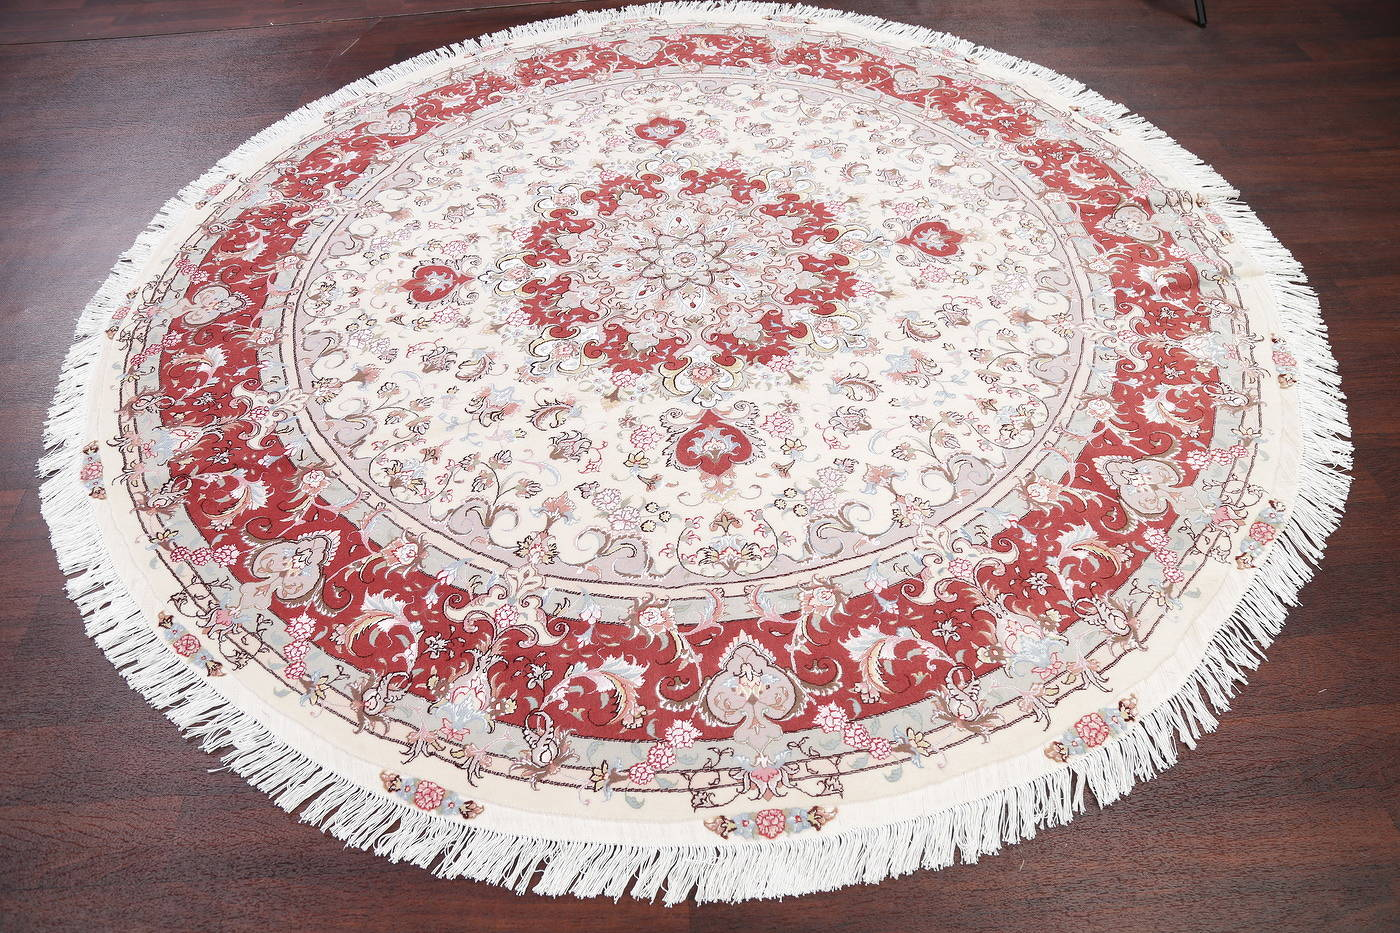 Ivory Floral Tabriz Persian Round Rug 9'x9' image 15